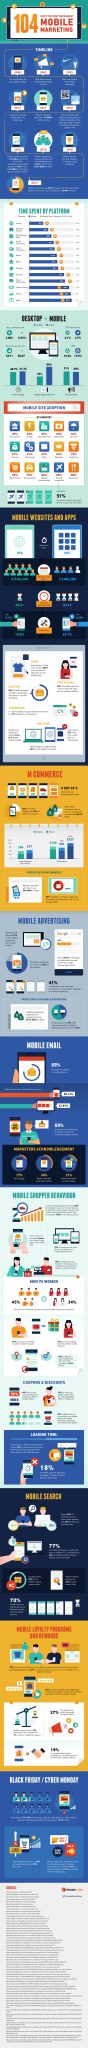 mobile marketing, Why Mobile Marketing Matters